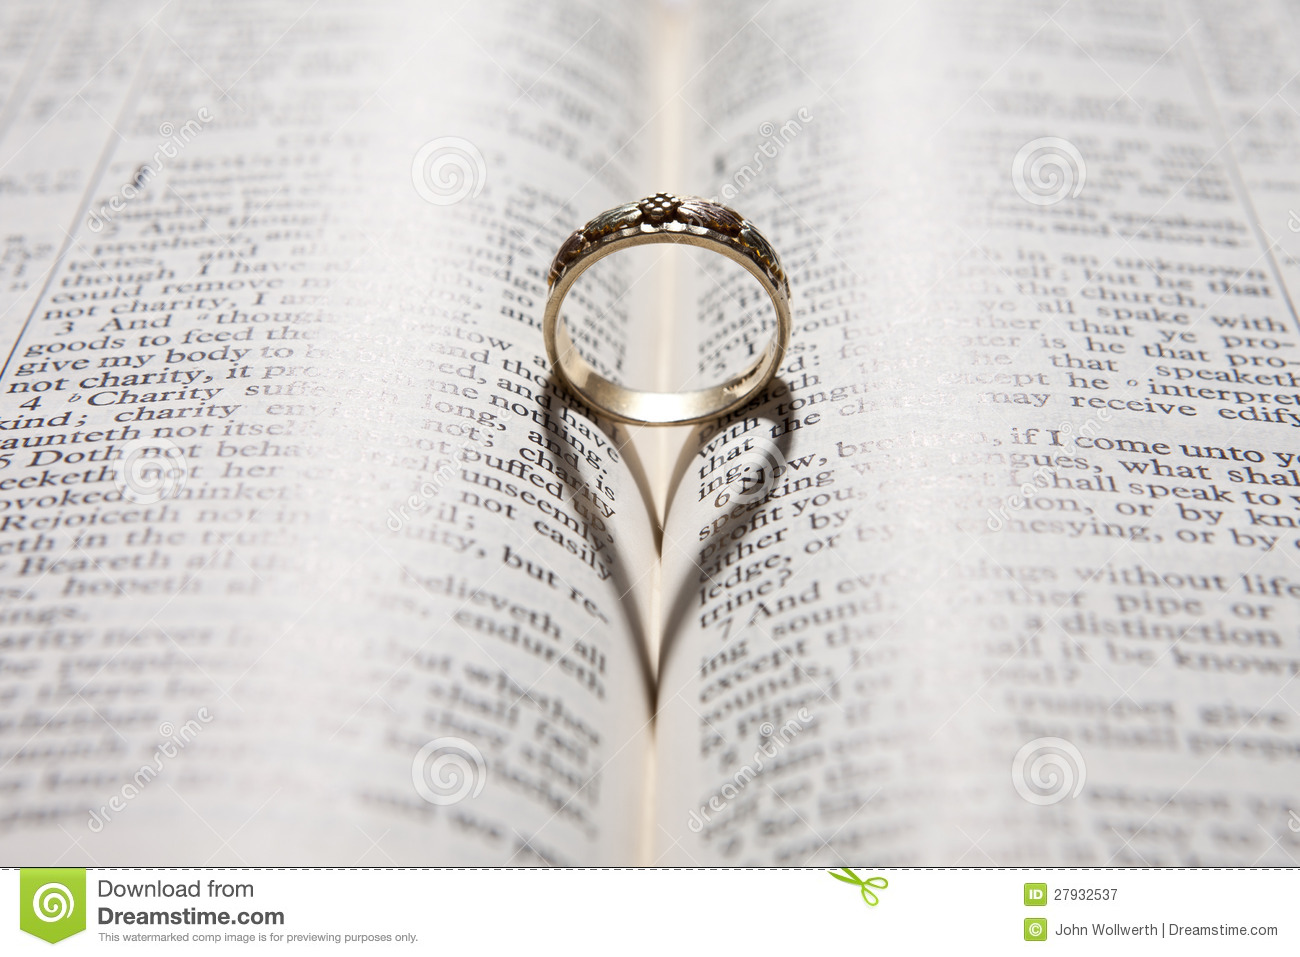 Ring casting heart shadow on bible stock image image for Wedding ring meaning bible